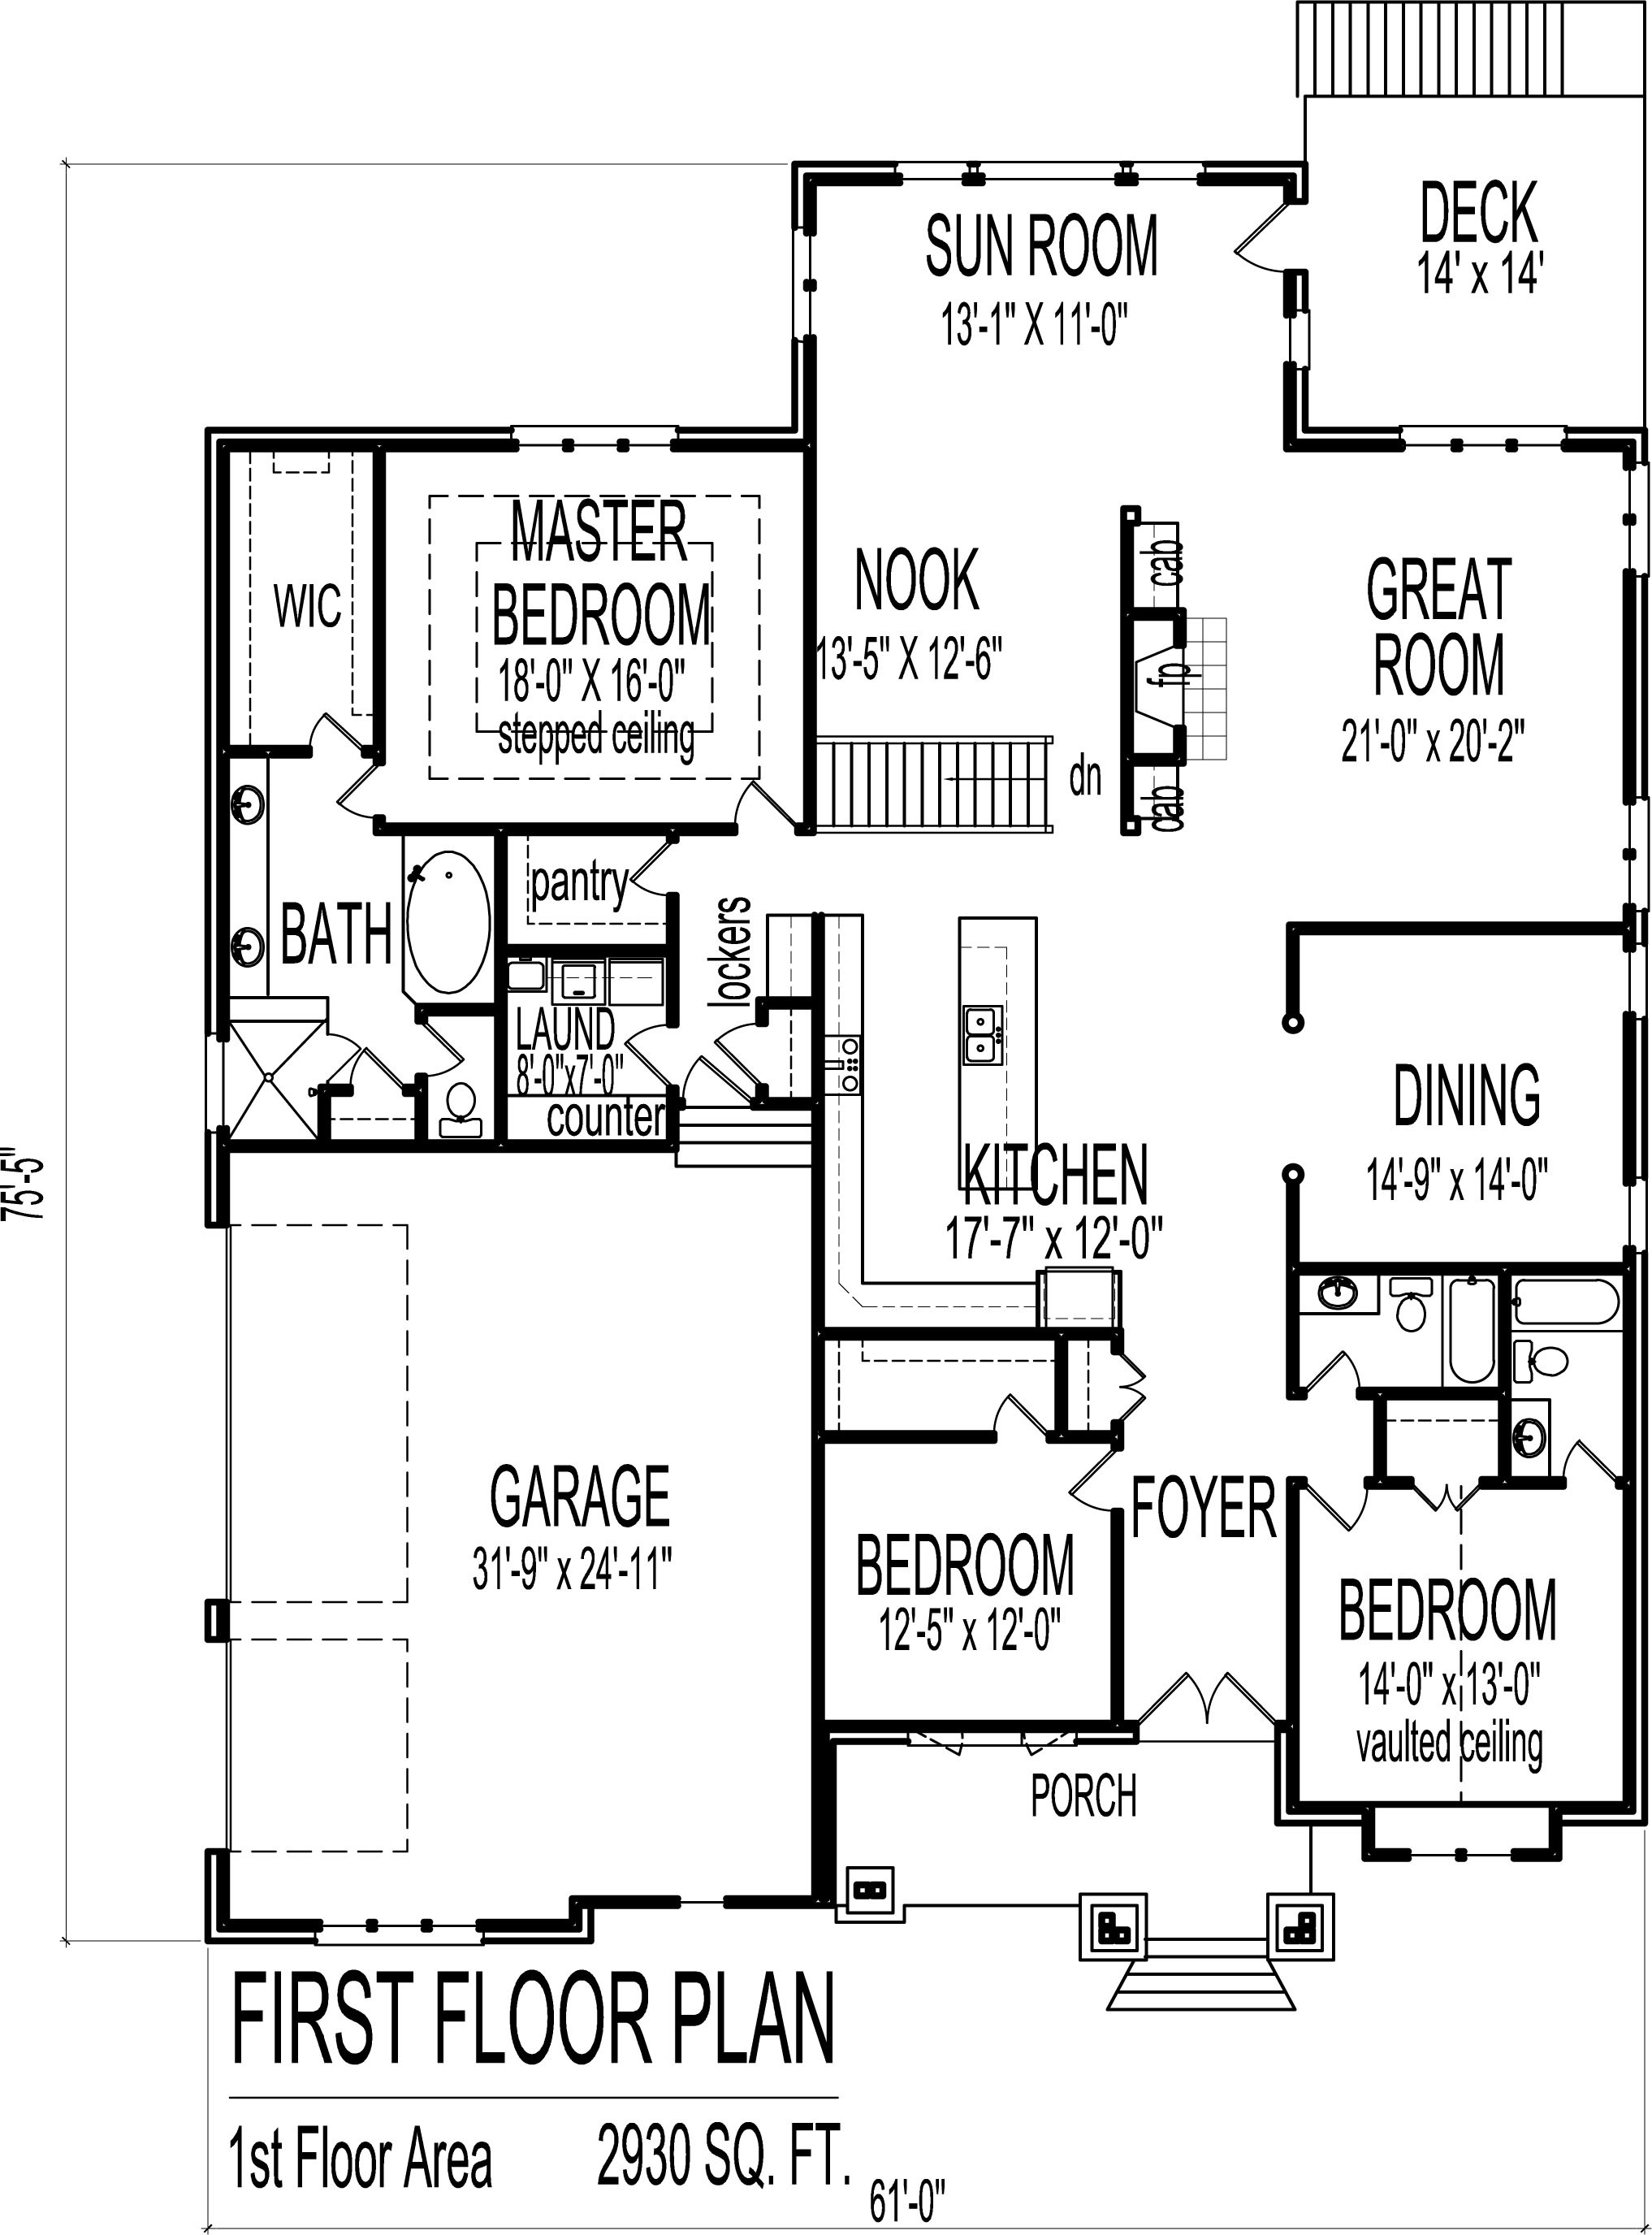 Draw A Plan Of Your House New Plan Drawing at Getdrawings